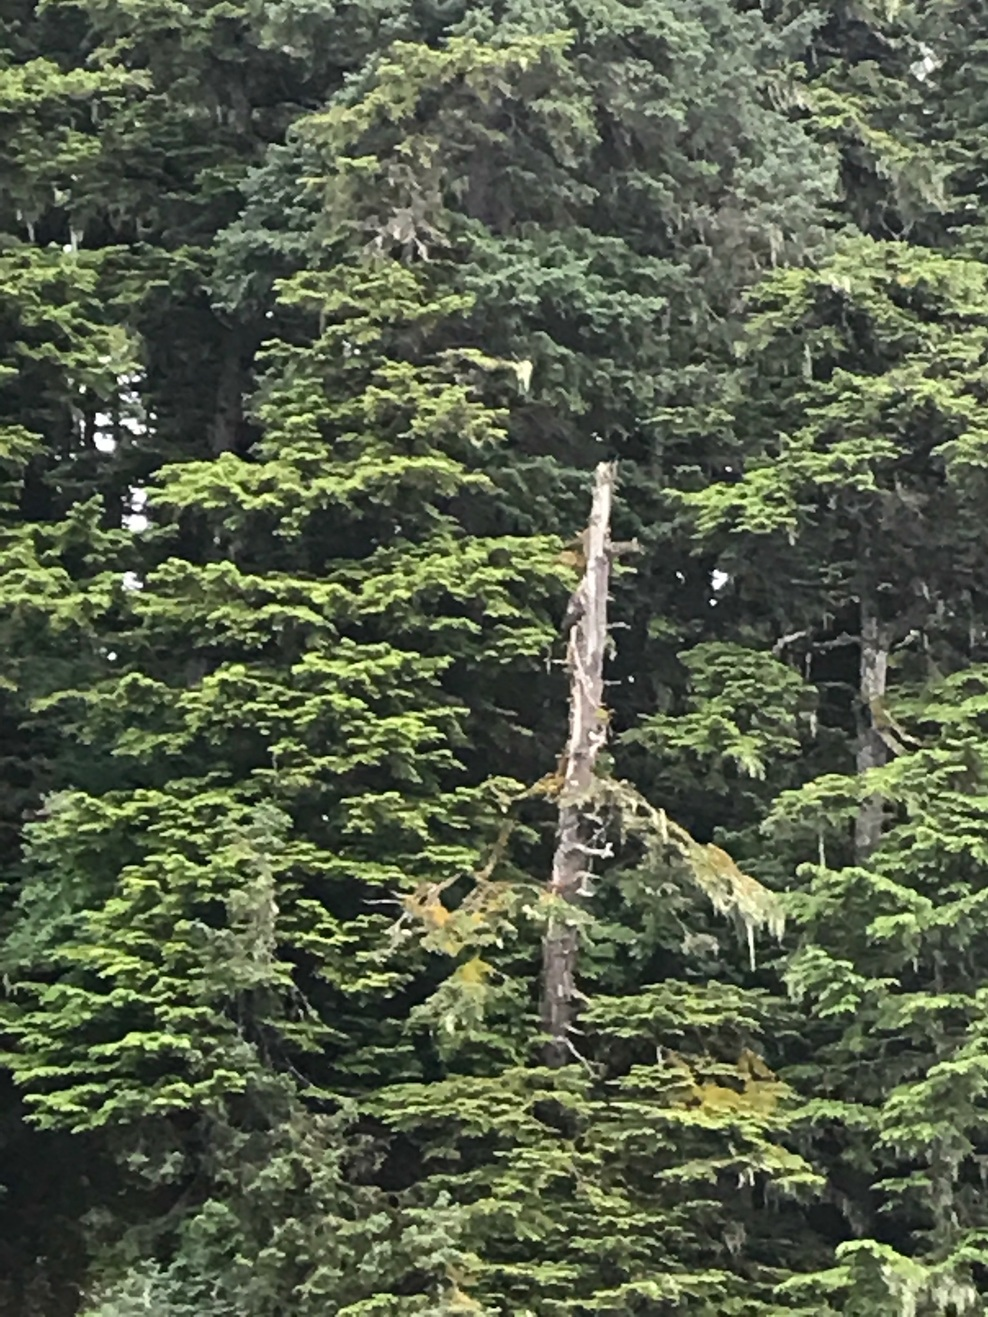 There is something on that dead tree